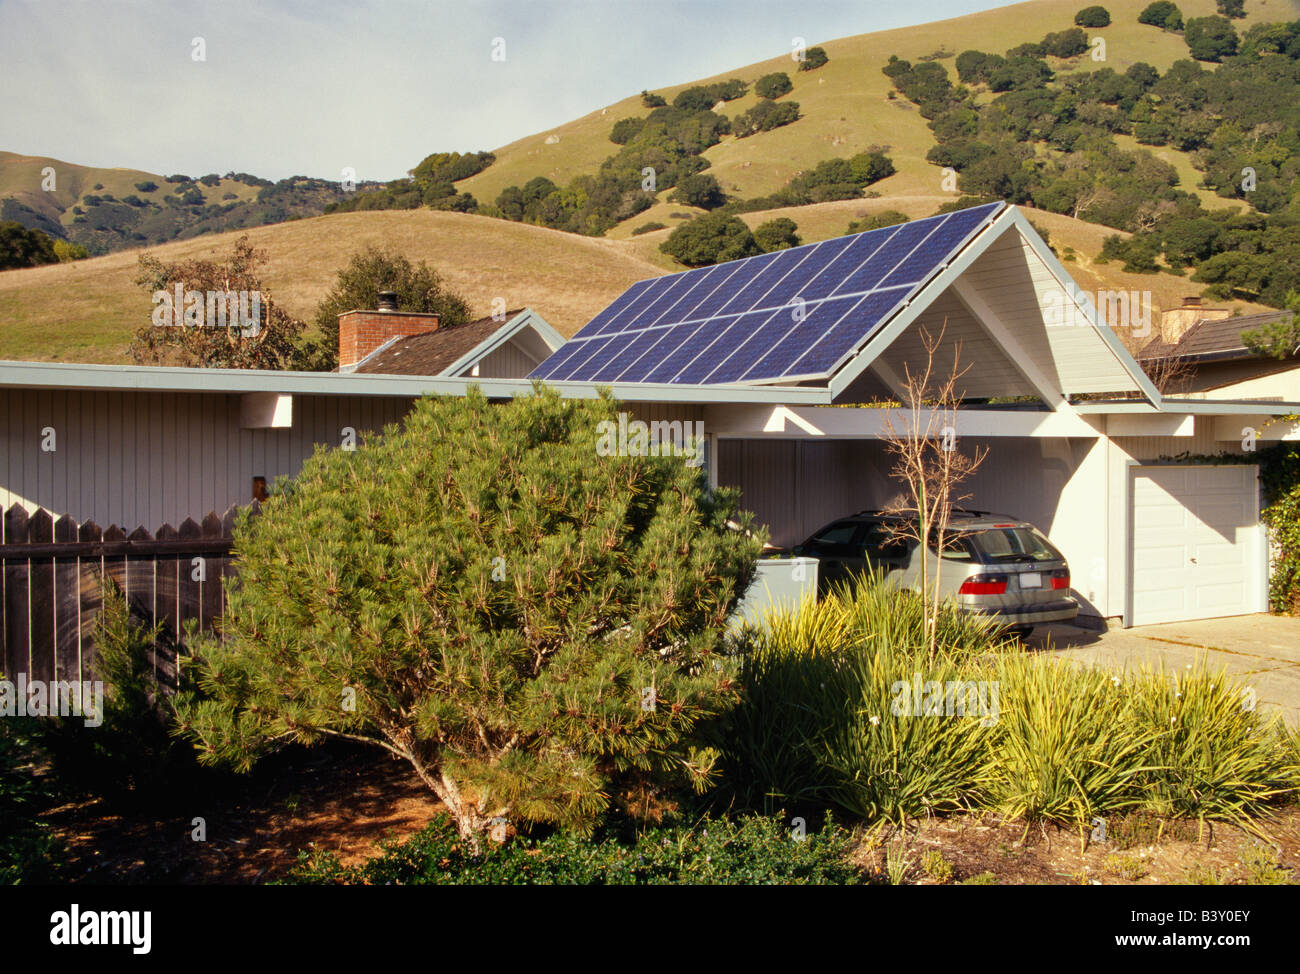 Solar panels operating  on roof. - Stock Image